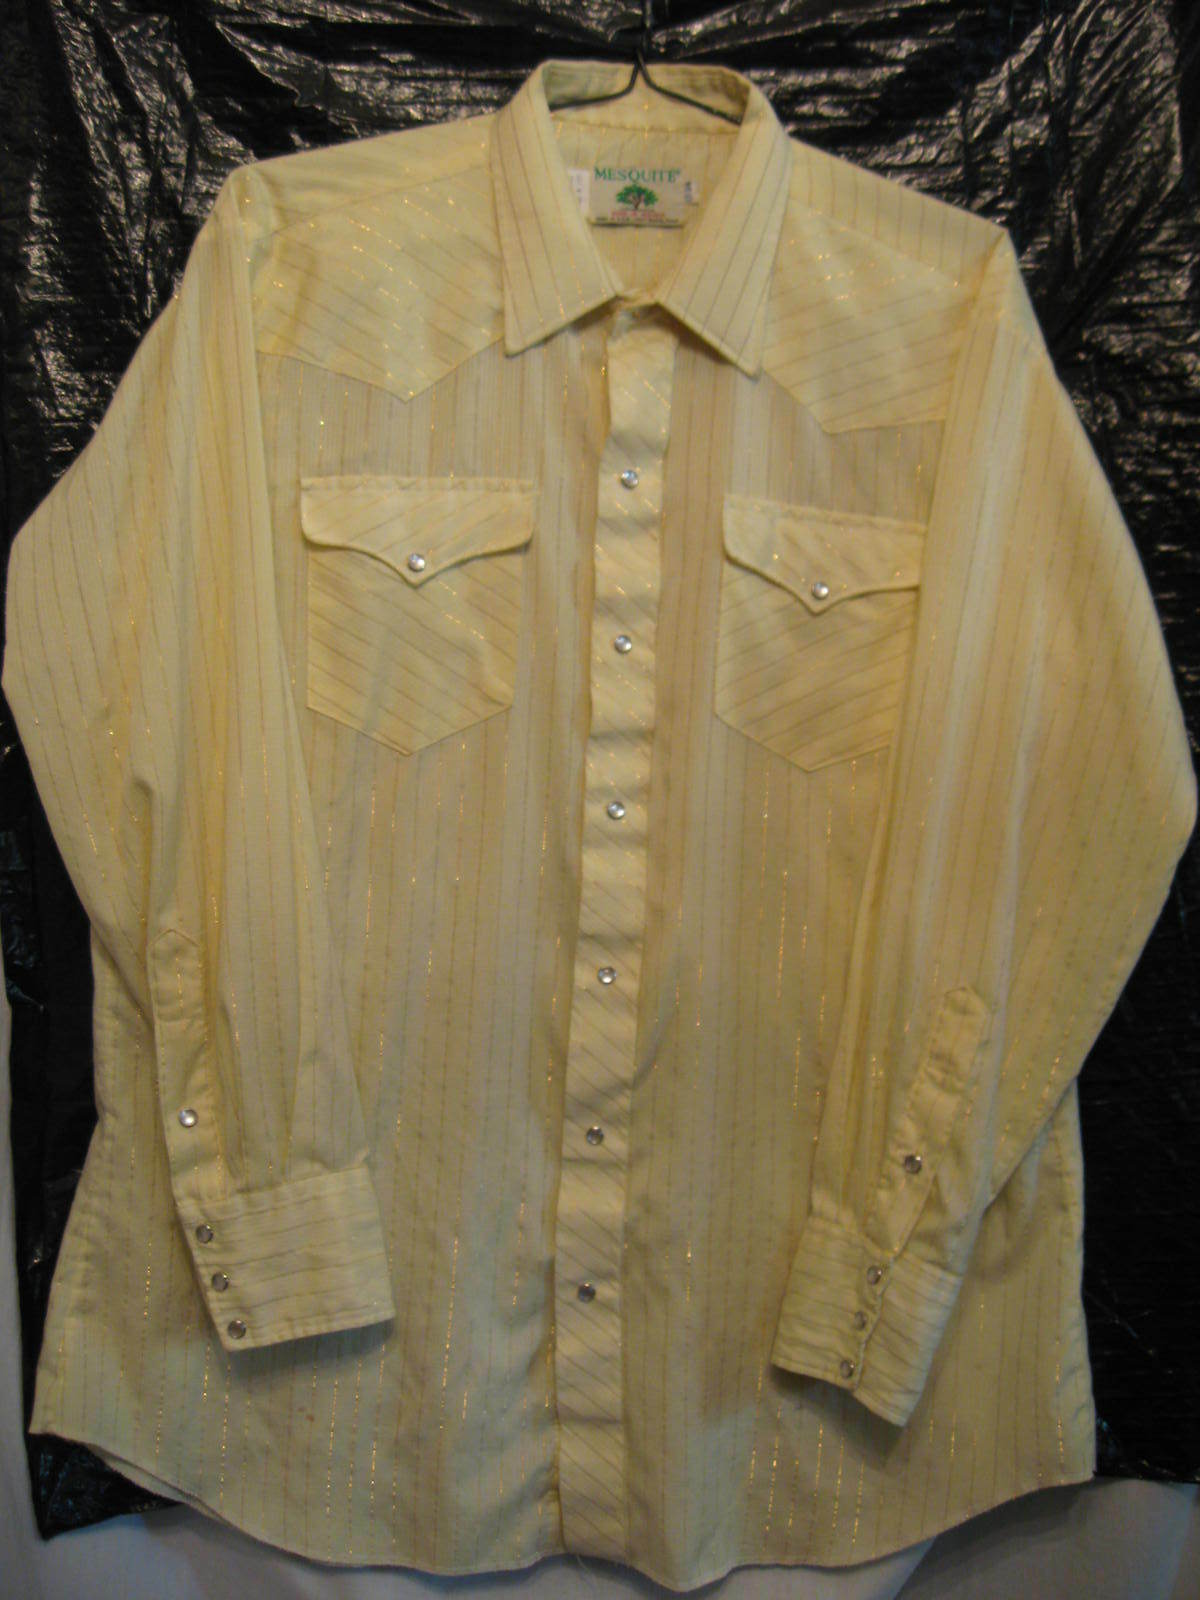 MESQUITE Men's Western Pearl Snap Cowboy Rodeo Square Dance Shirt Sz 17 x 34 NEW